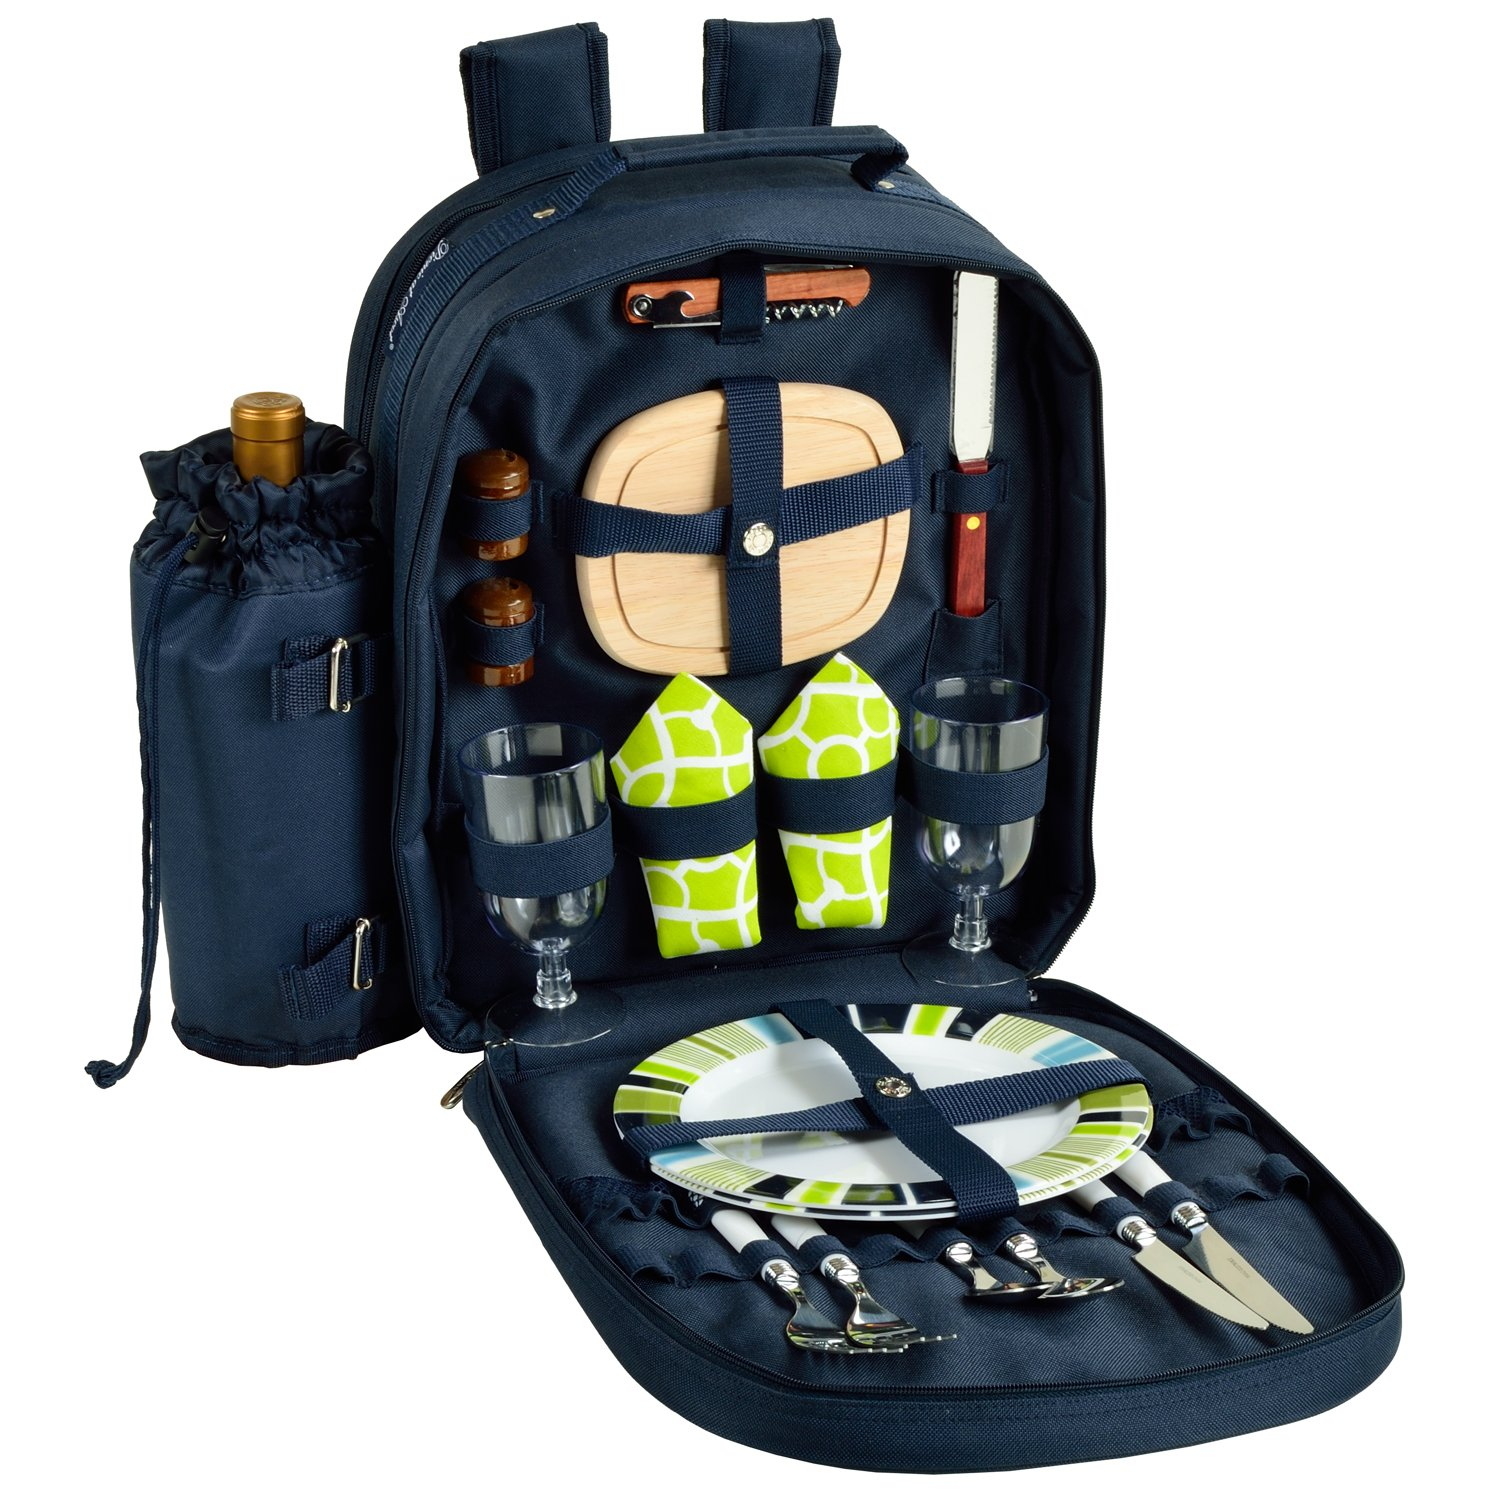 Picnic at Ascot Original Equipped 2 Person Picnic Backpack with Cooler & Insulated Wine Holder- Designed & Assembled in the USA by Picnic at Ascot